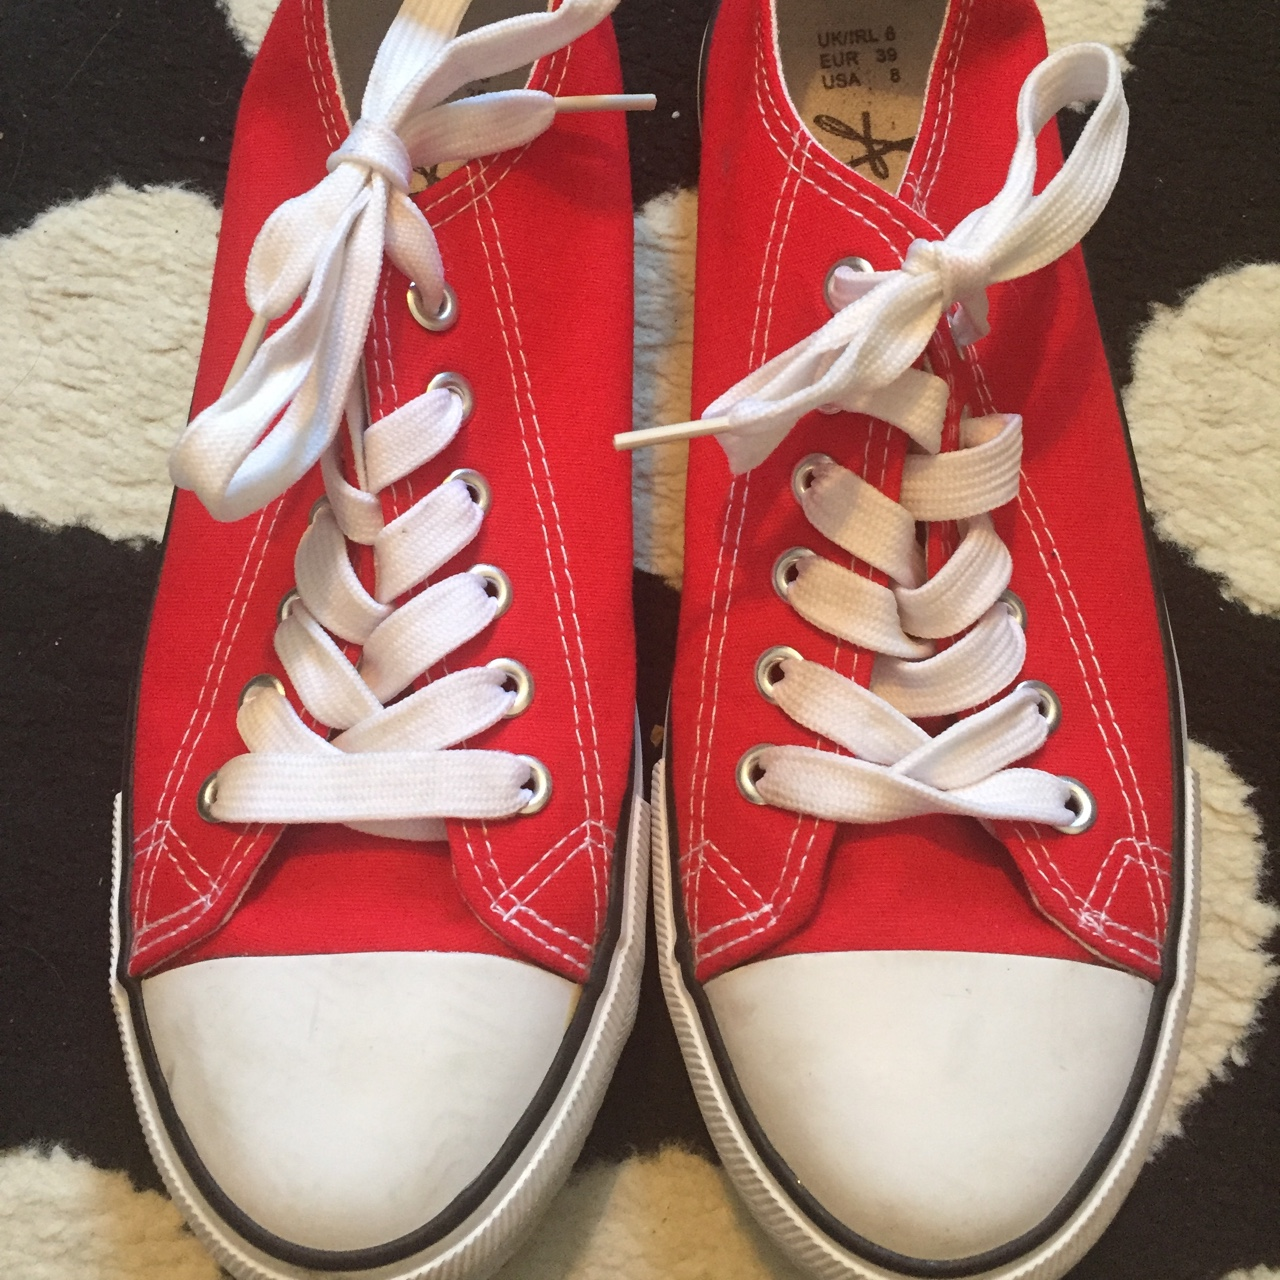 red converse style shoes